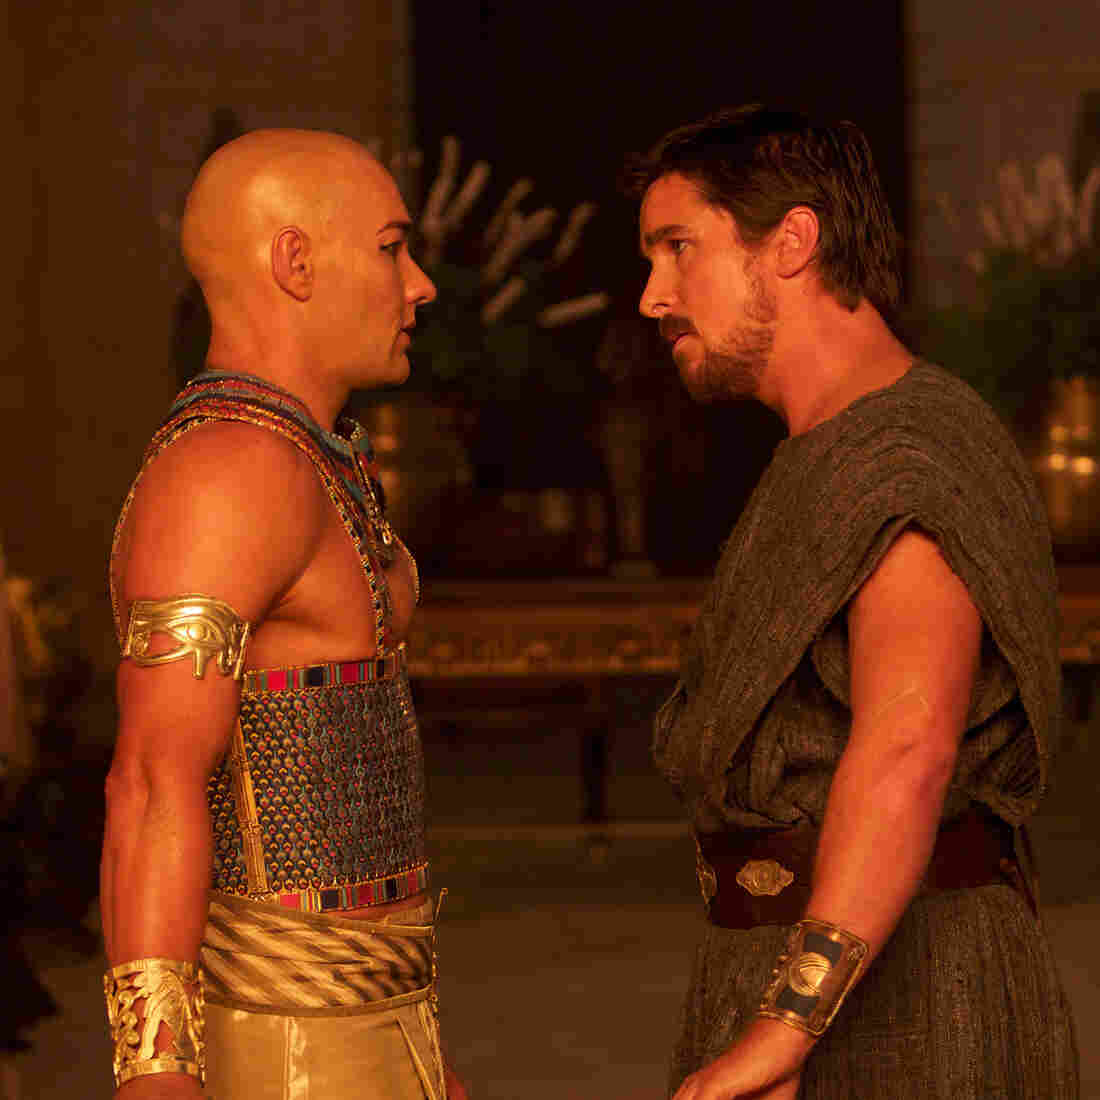 Rhamses (Joel Edgerton) and Moses (Christian Bale) in Ridley Scott's Exodus: Gods and Kings.